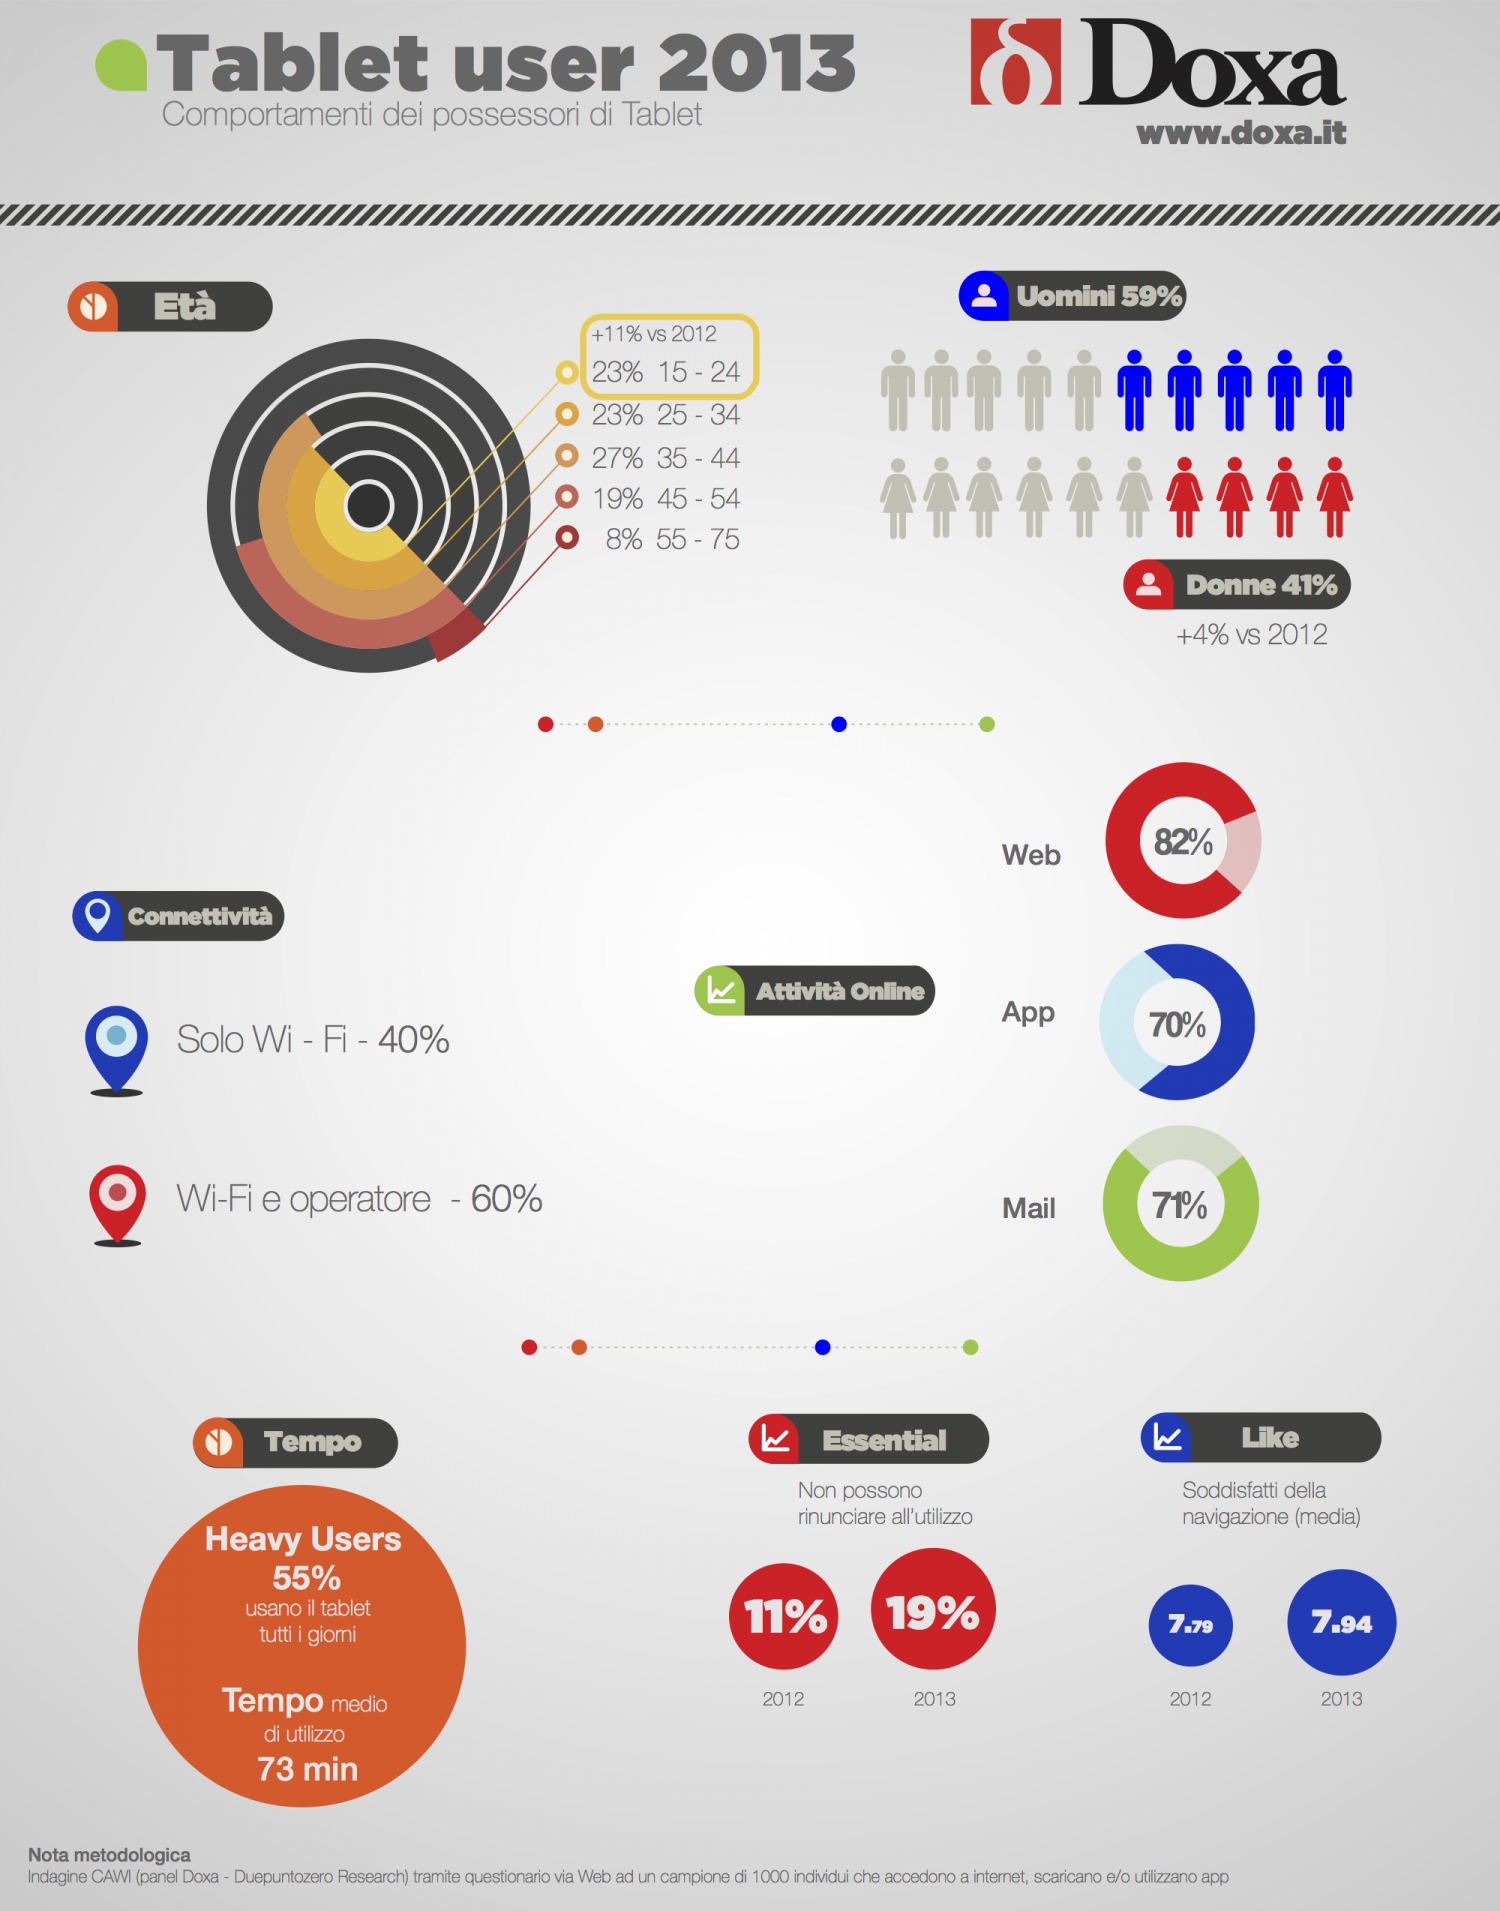 Doxa Tablet User 2013 Infographic